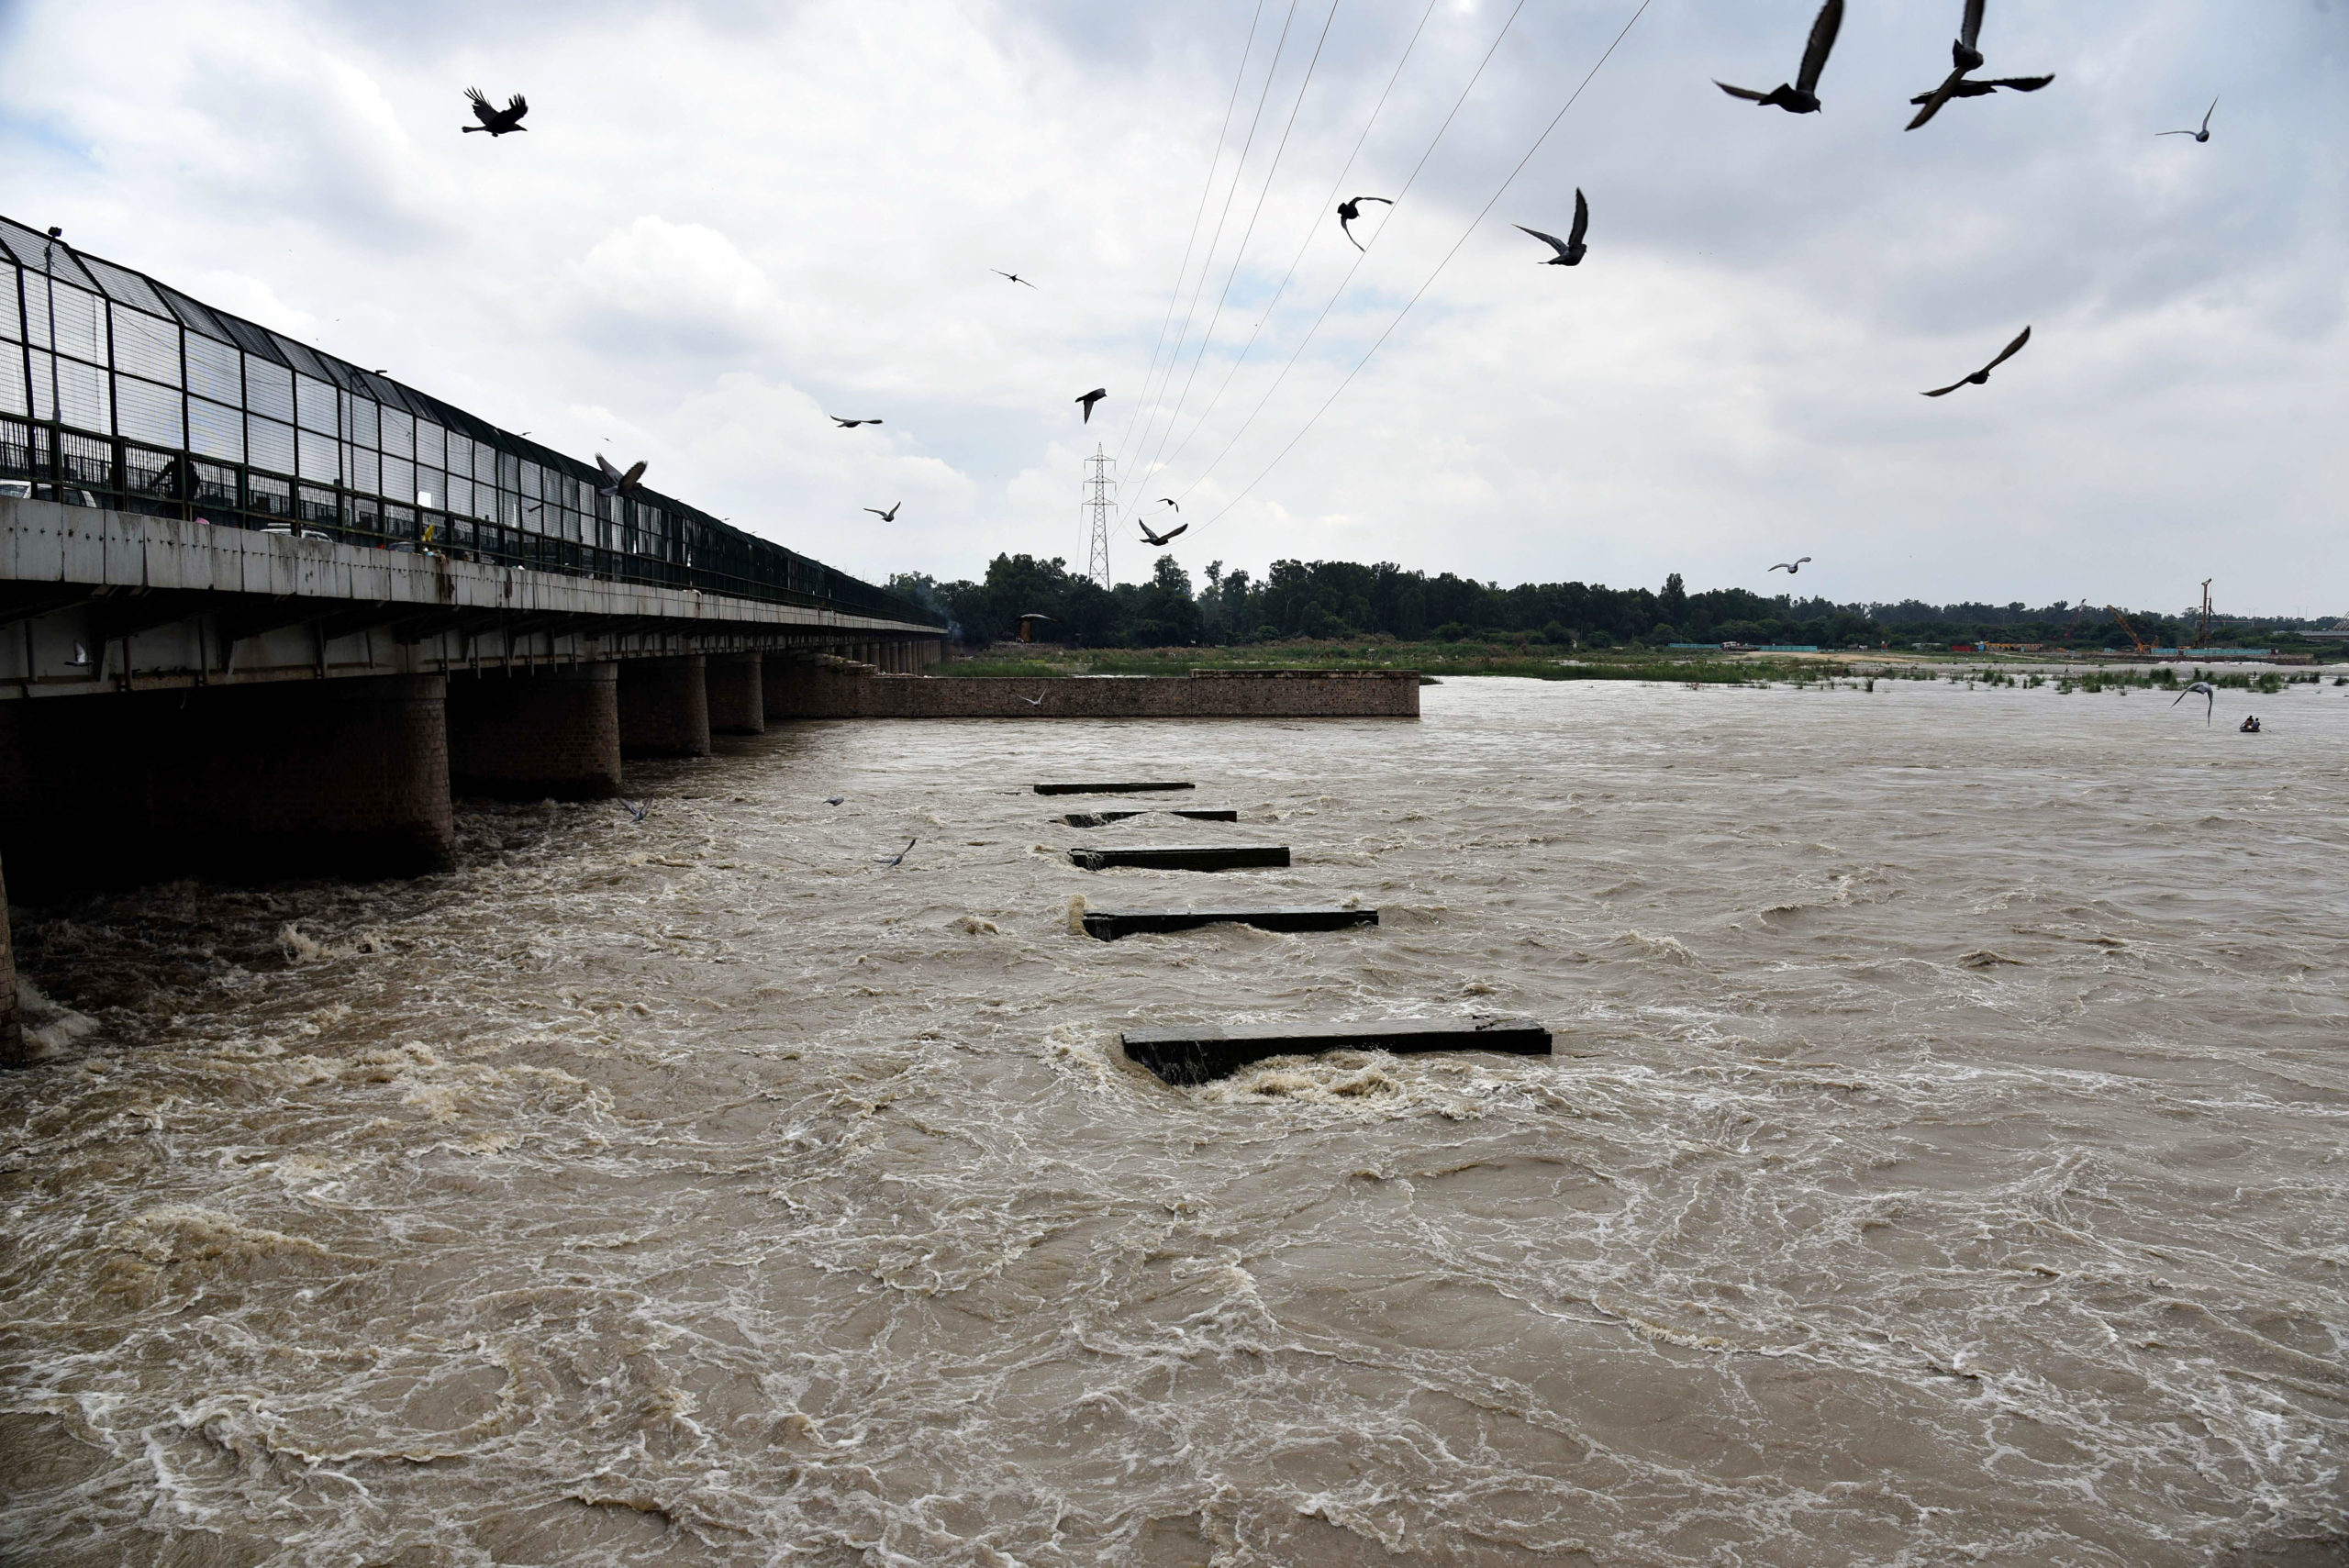 Delhi: Water level in Yamuna rises; over 100 families moved to safer areas